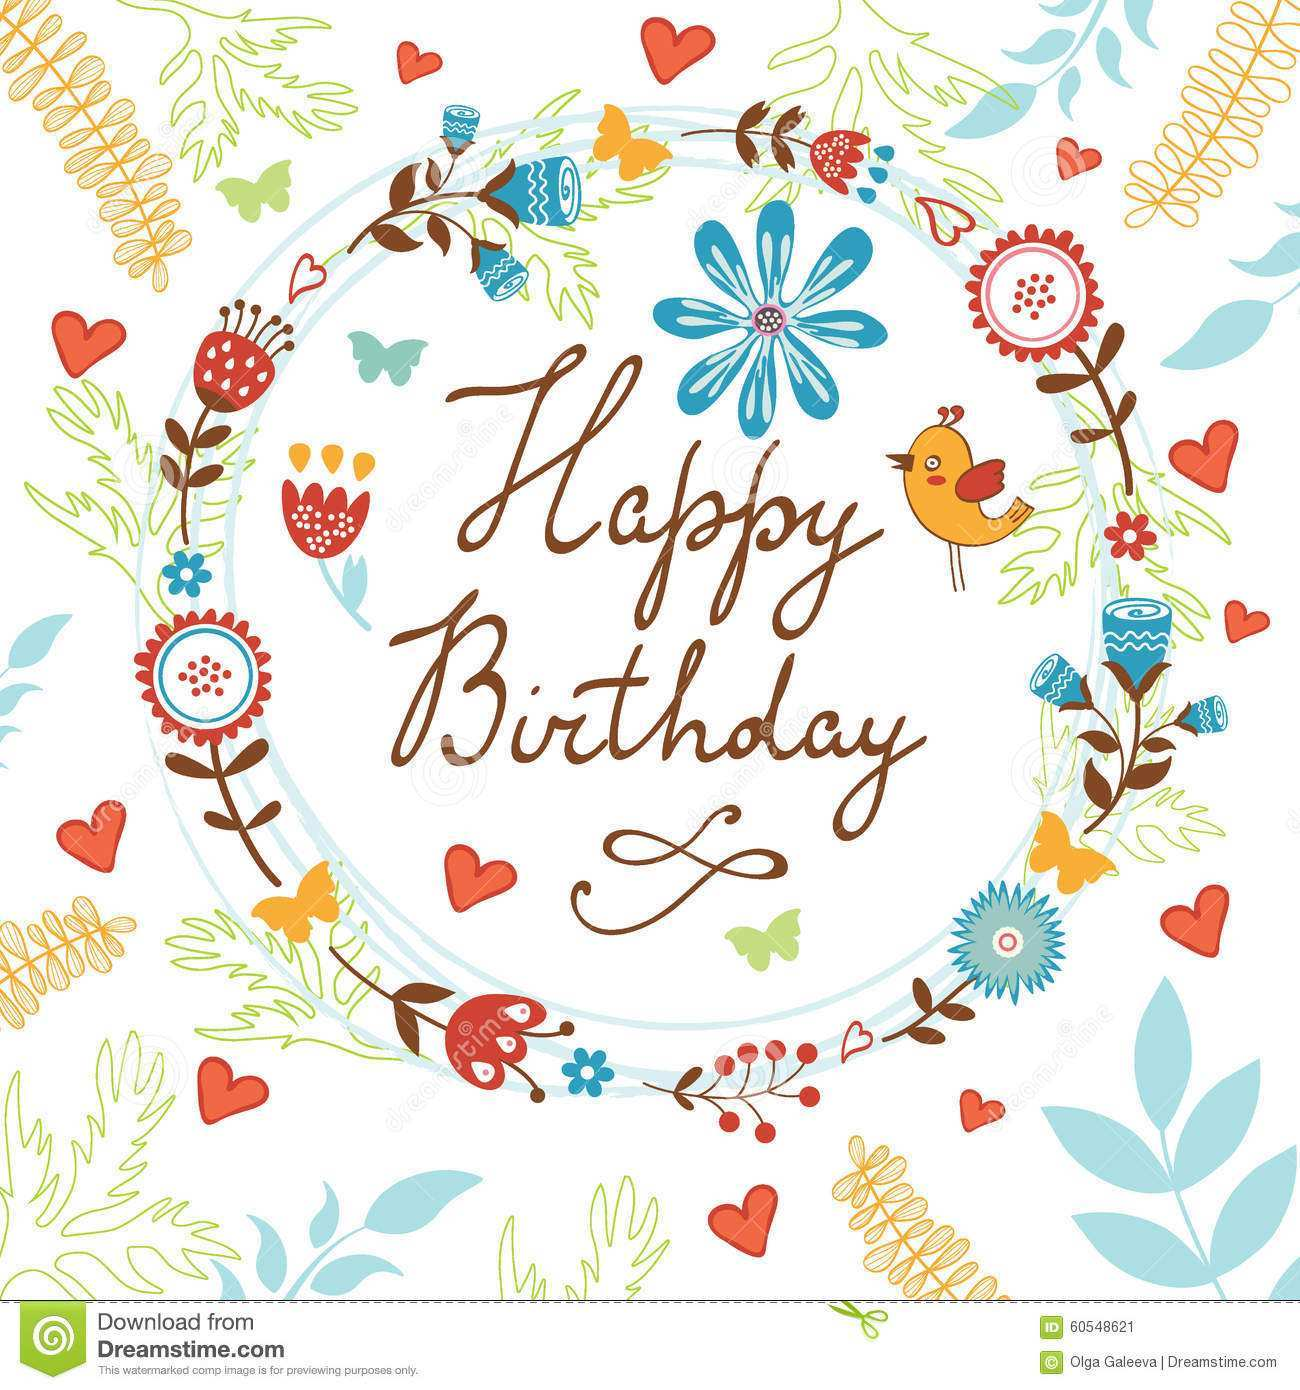 75 Customize Our Free Birthday Card Jpg Format for Birthday Card Jpg Format